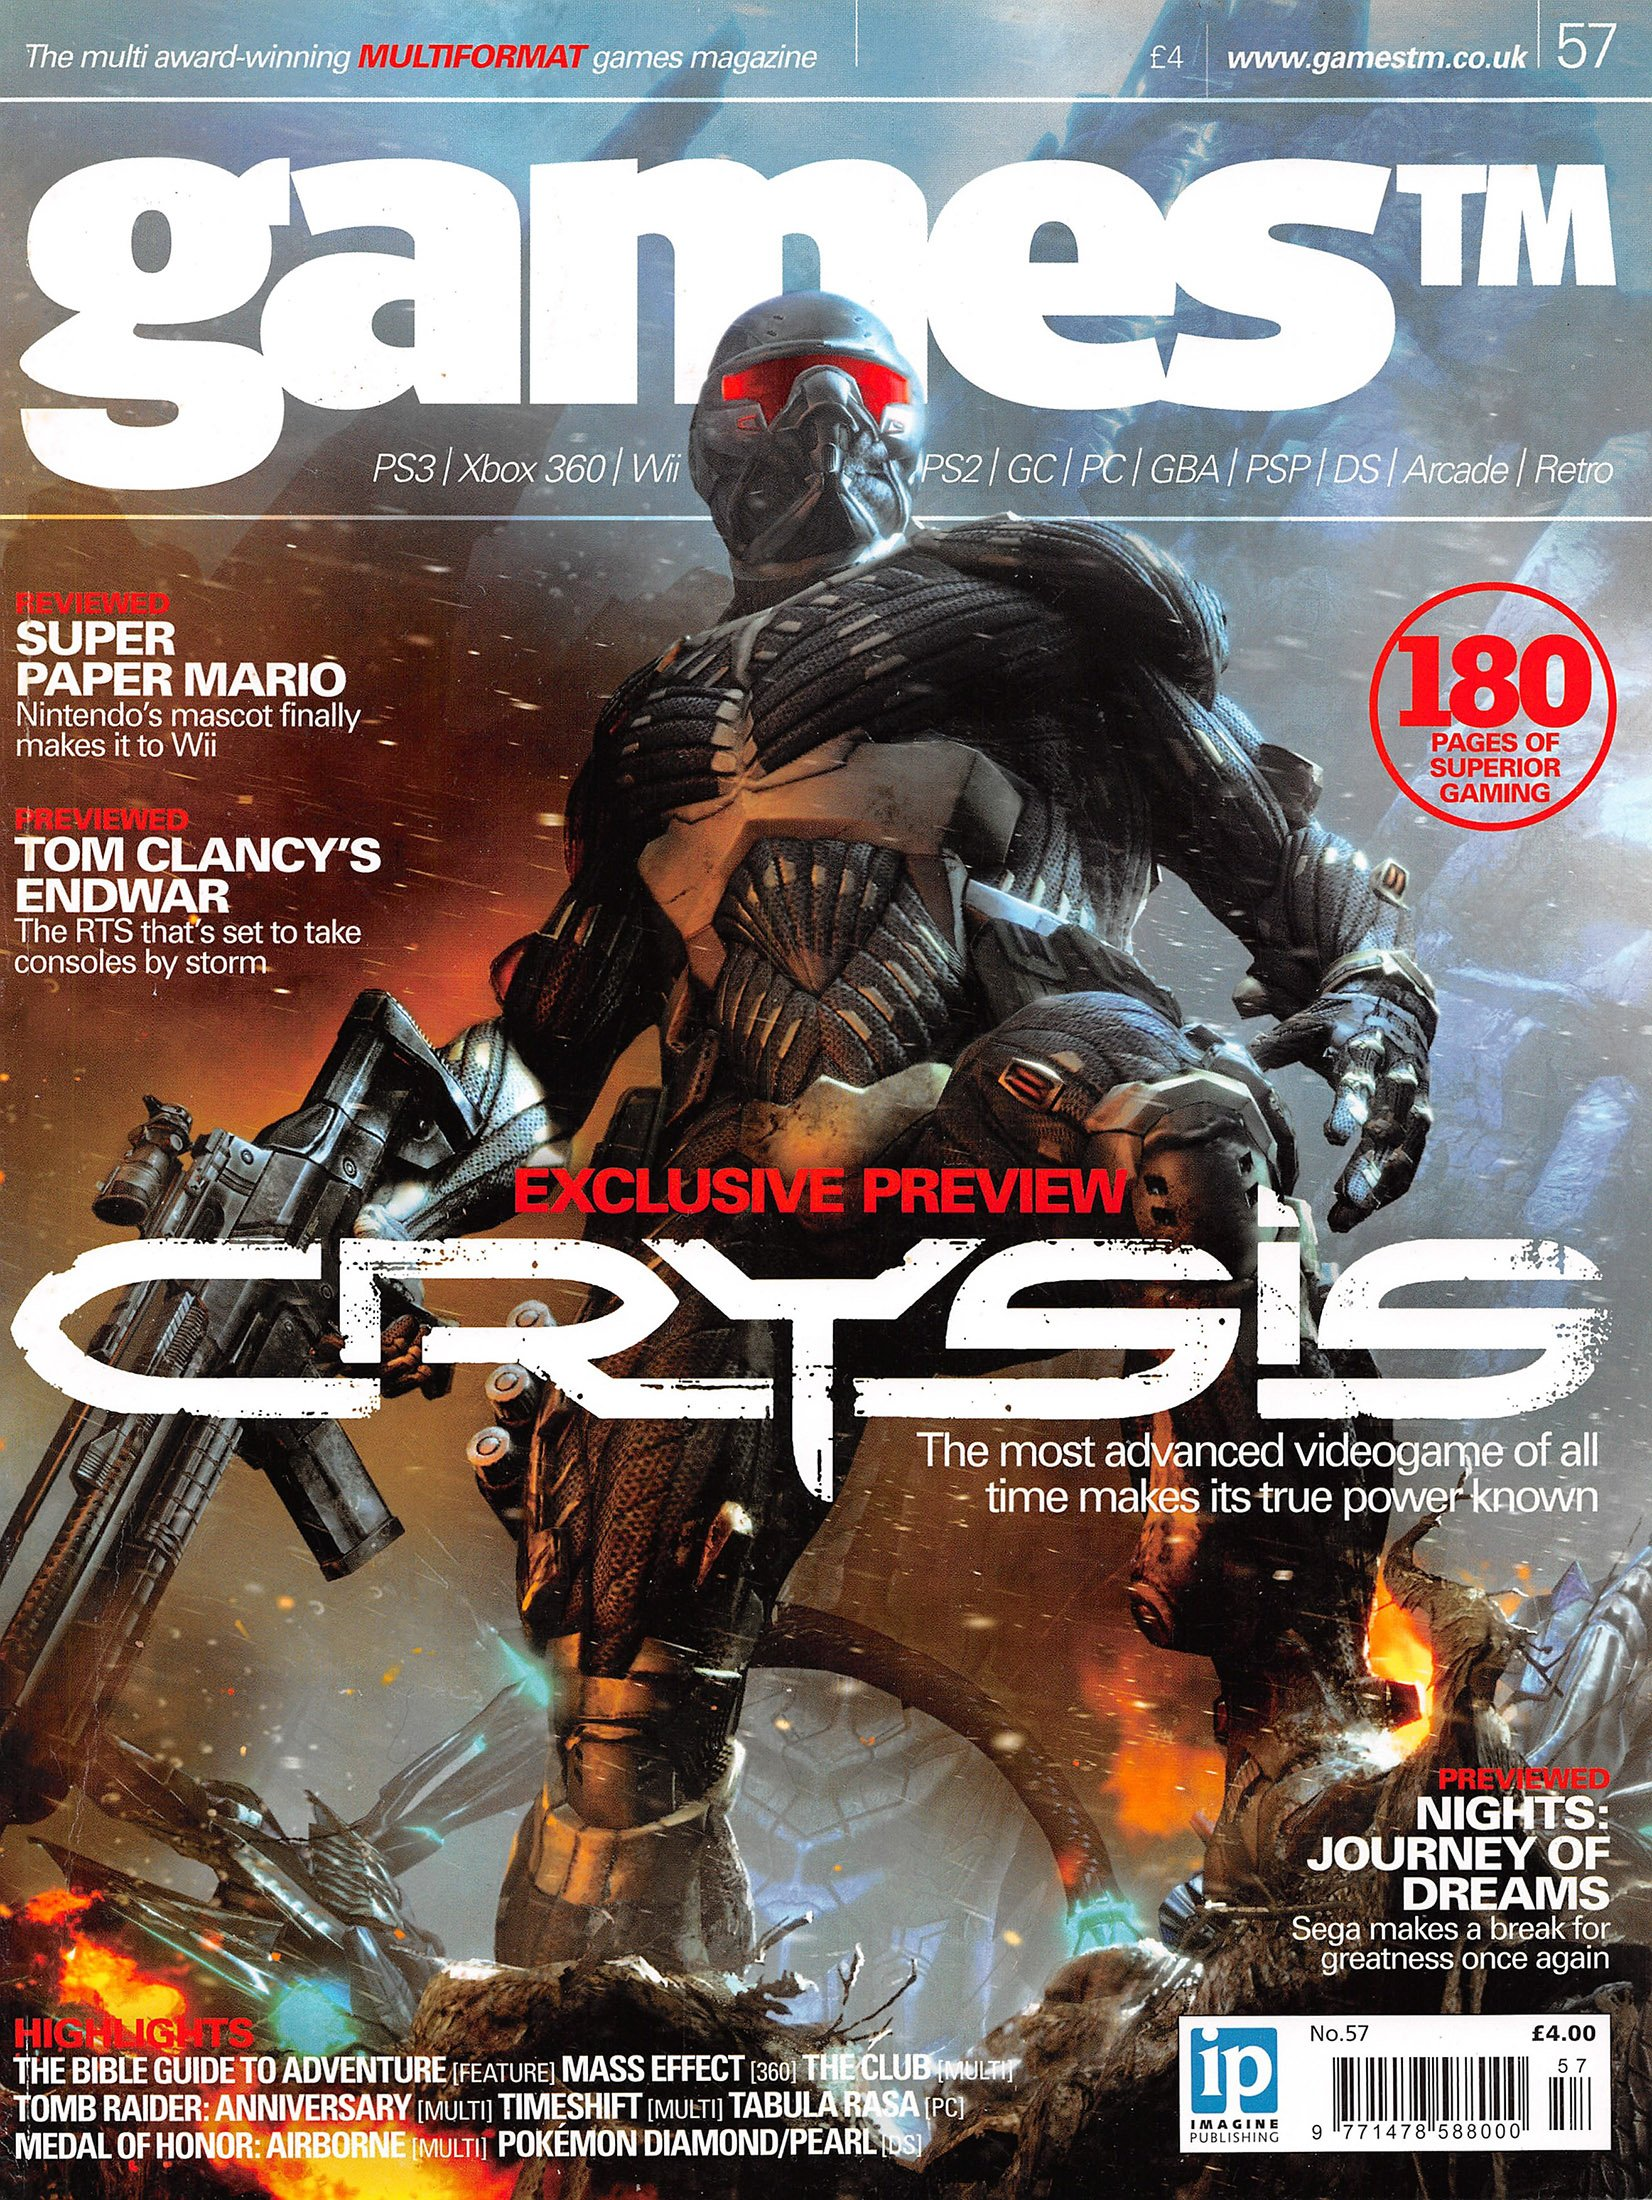 Games TM Issue 057 (May 2007)